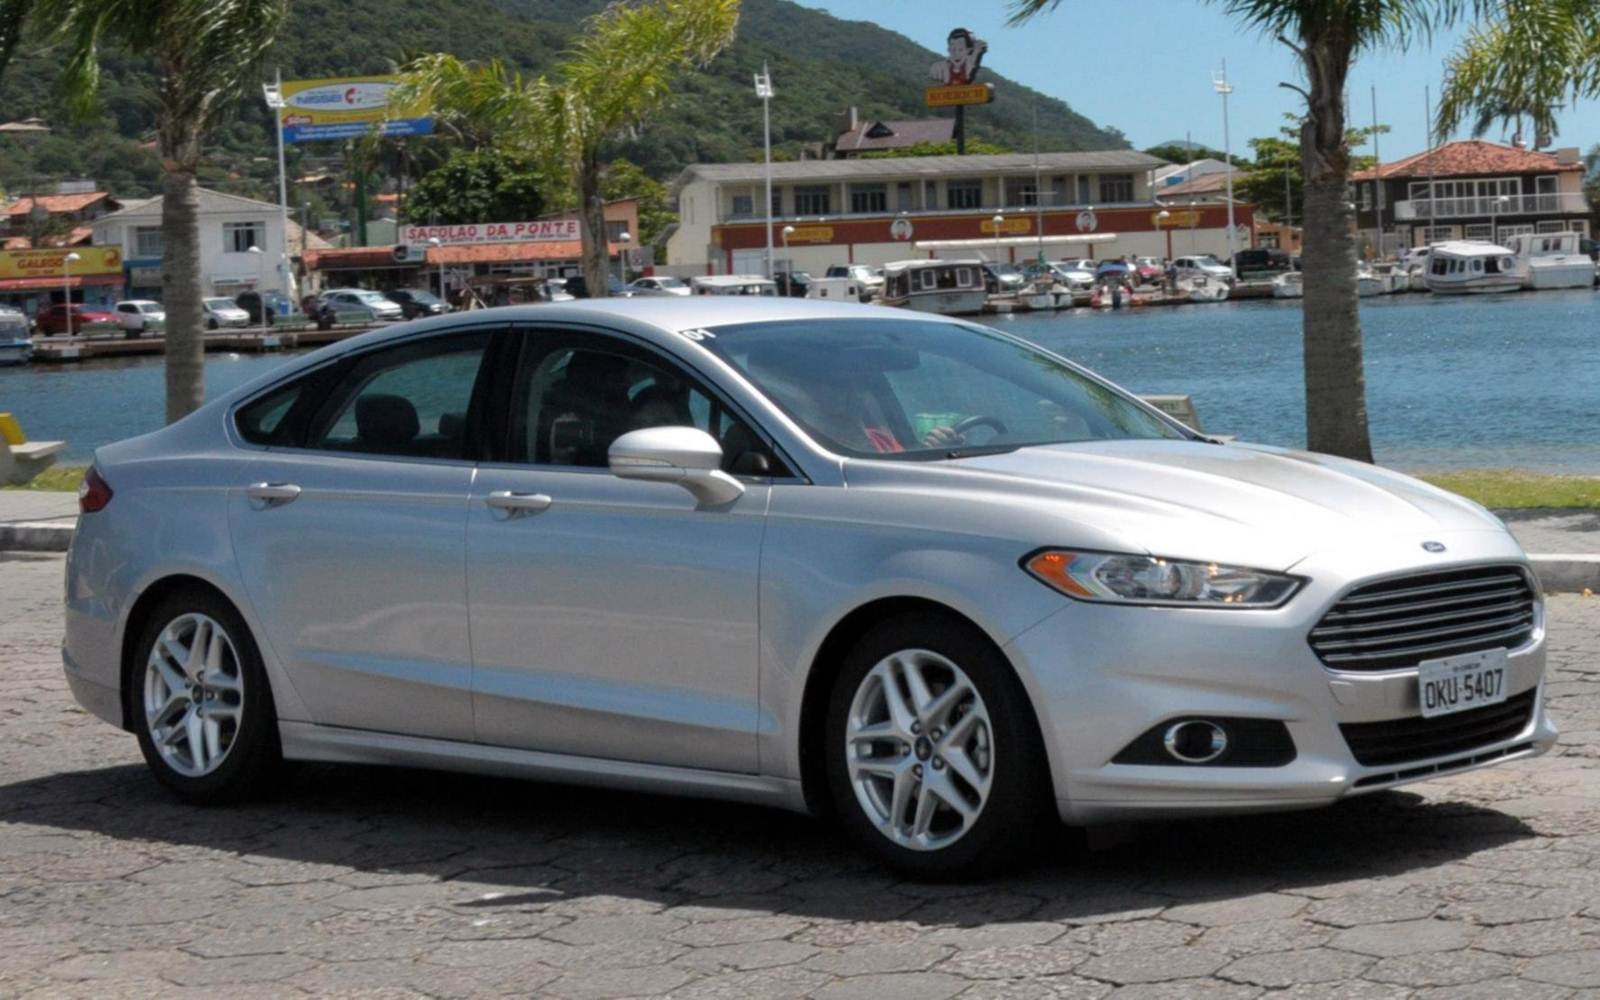 Ford Fusion - recall